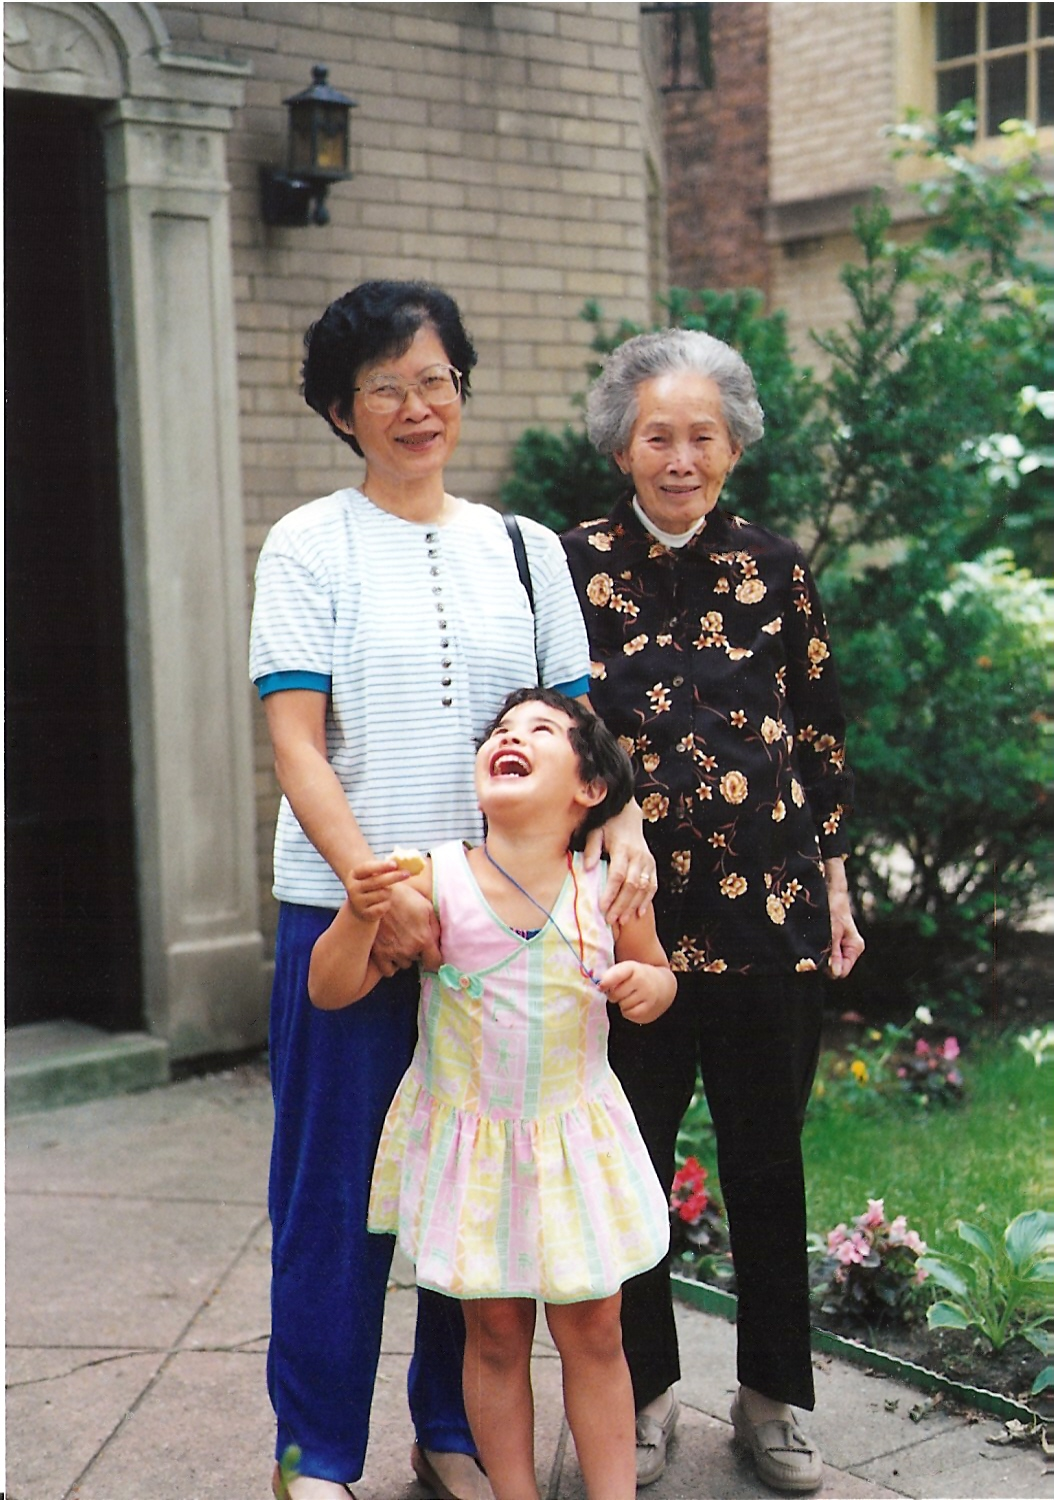 Generations Regan with grandma and greatgrandma around 1991